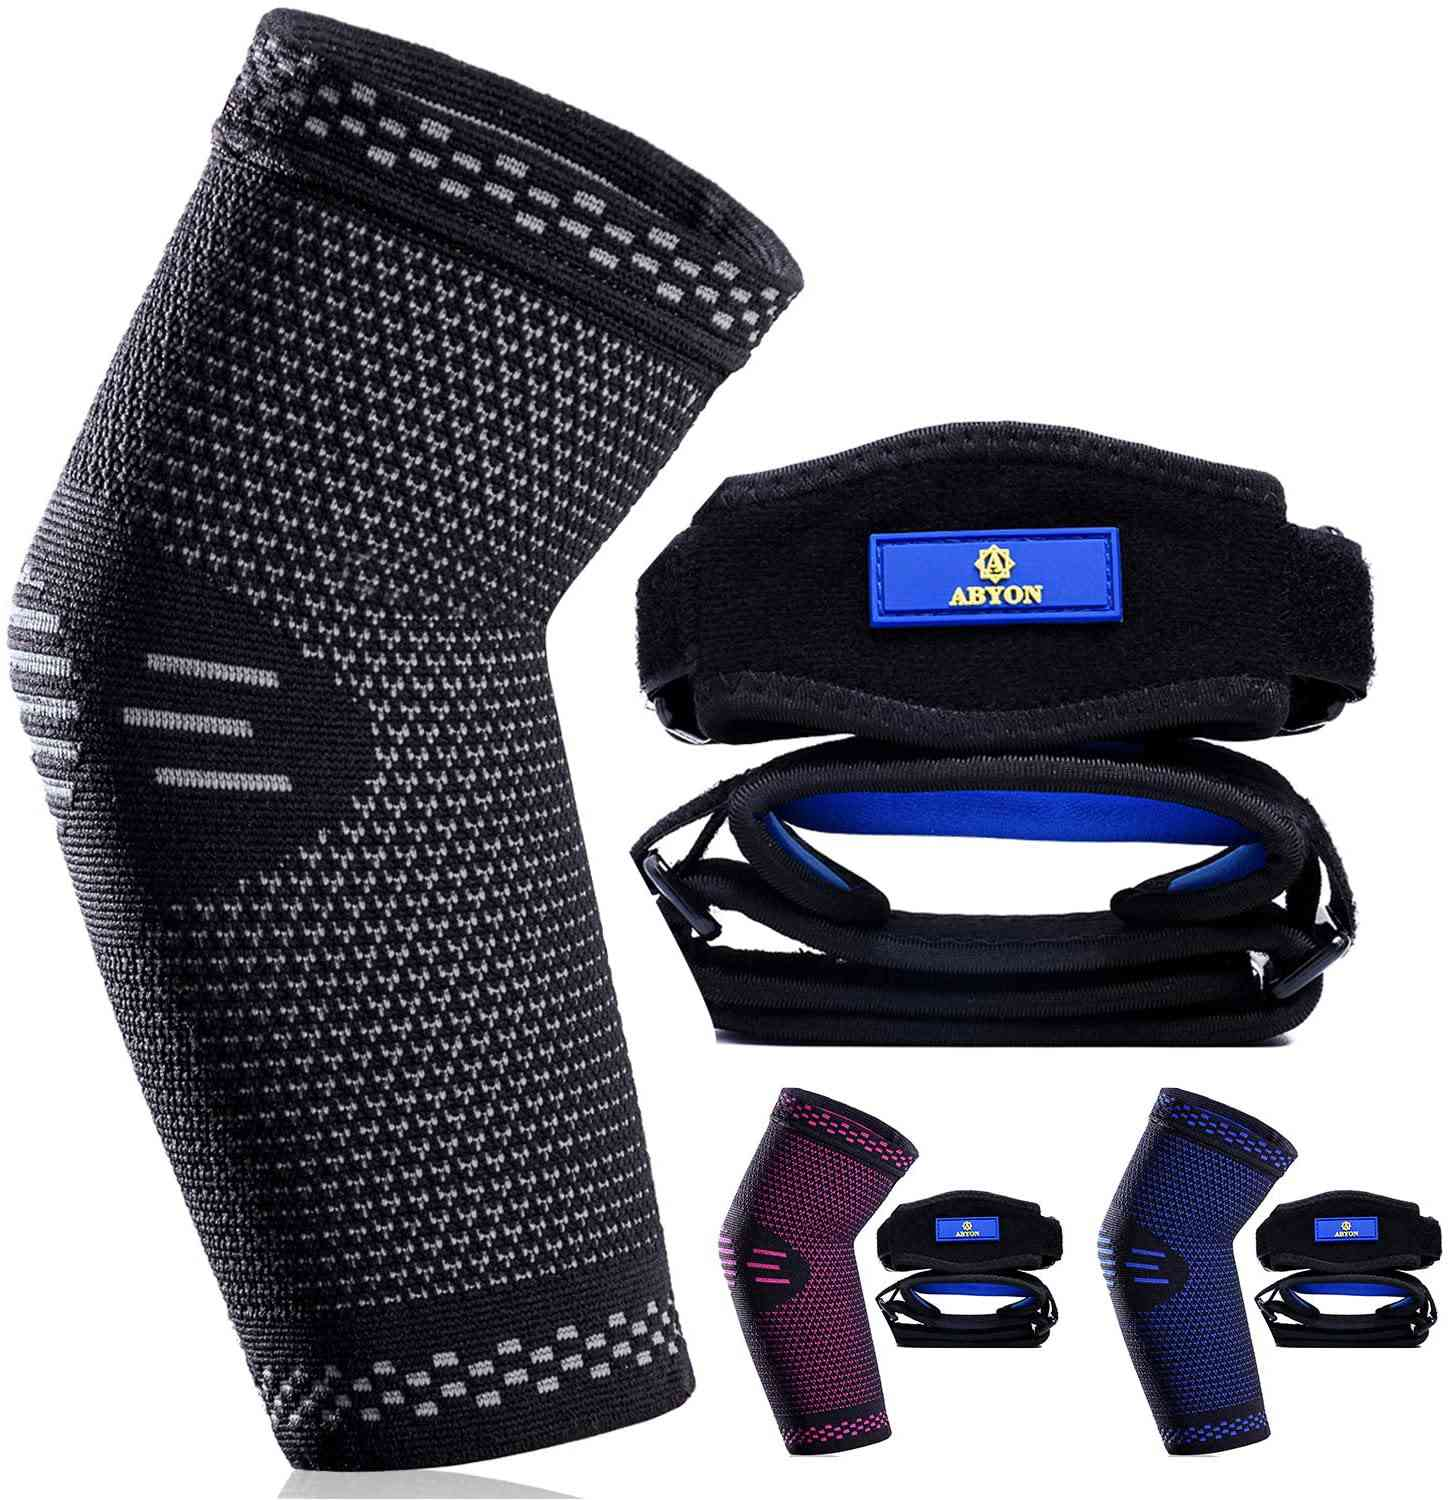 Abyon Elbow Compression Sleeve Support Gear